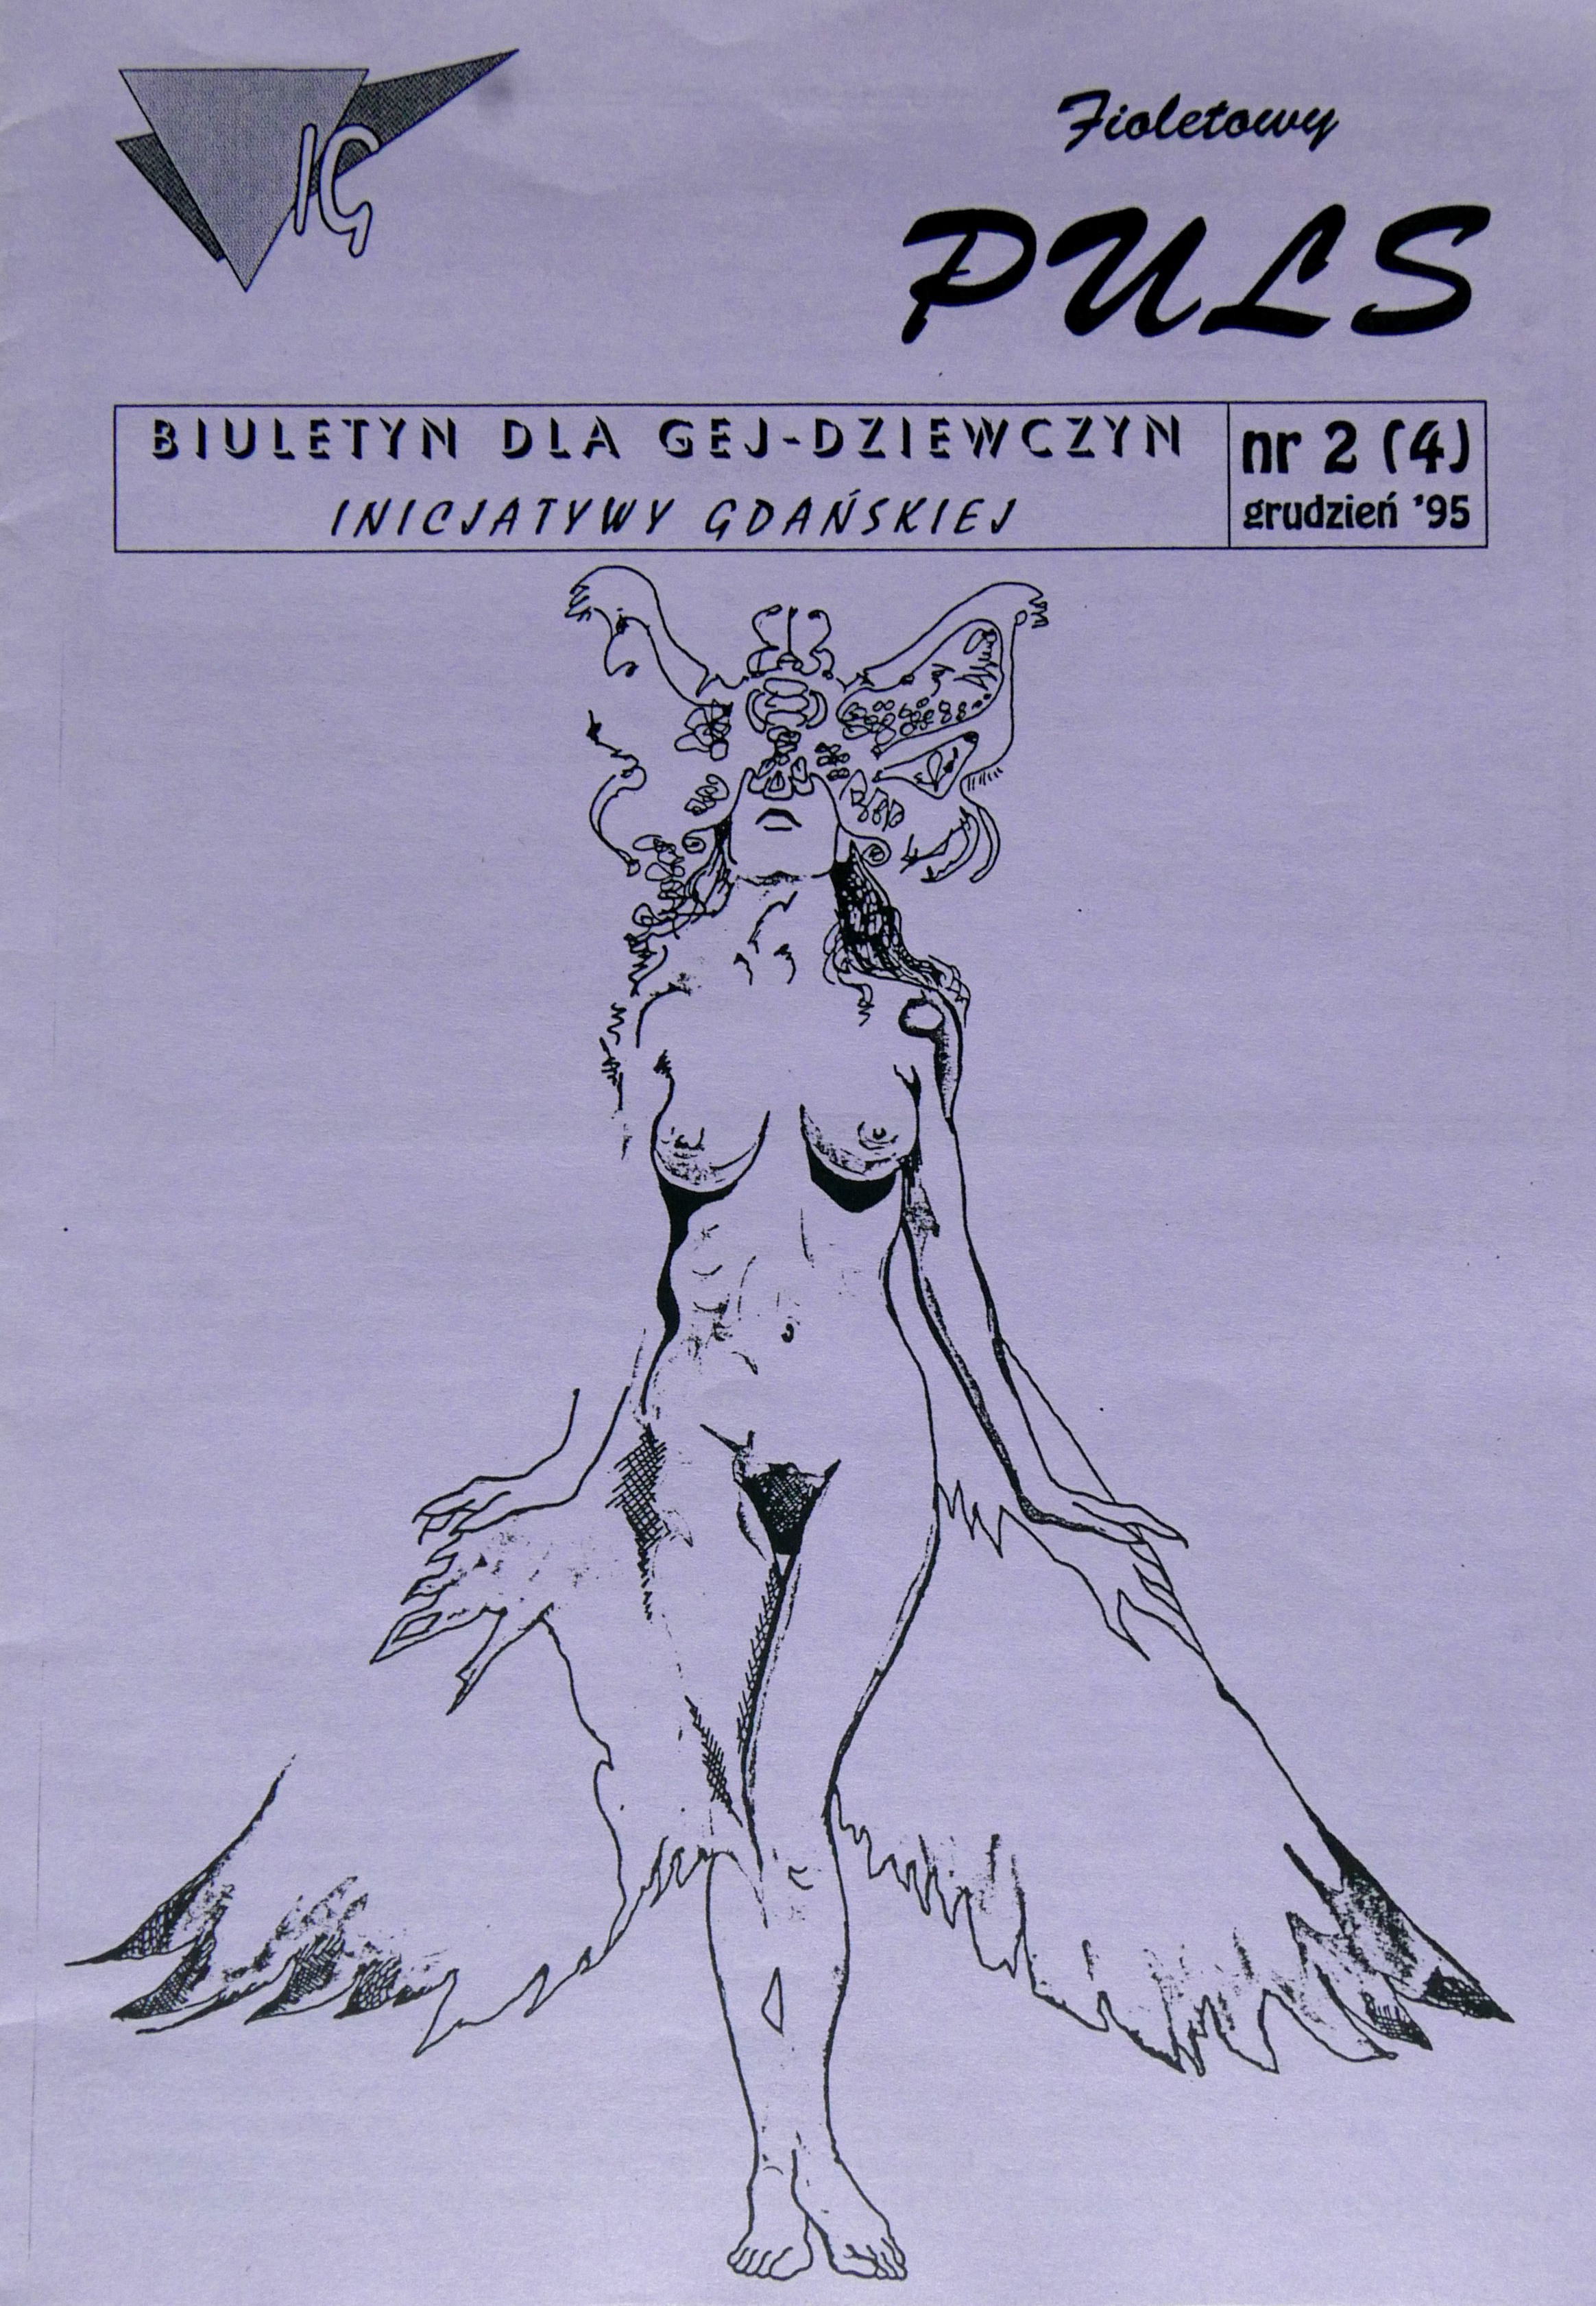 Fioletowy Puls, Polish lesbian magazine, issue No 2, 1995, from the QAI collection